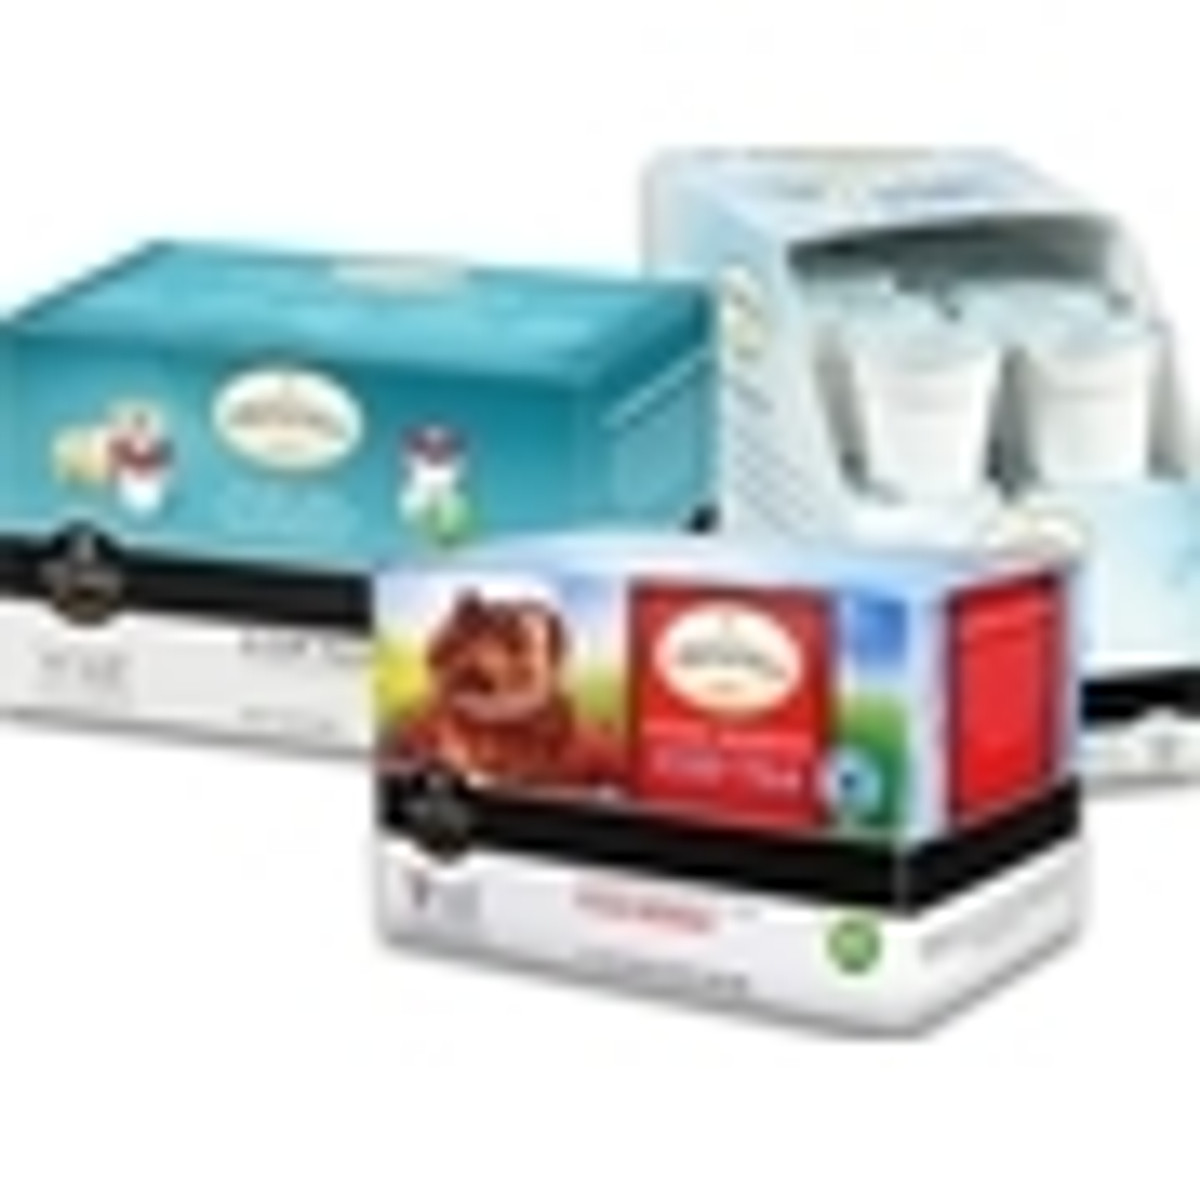 Twining's K-Cups